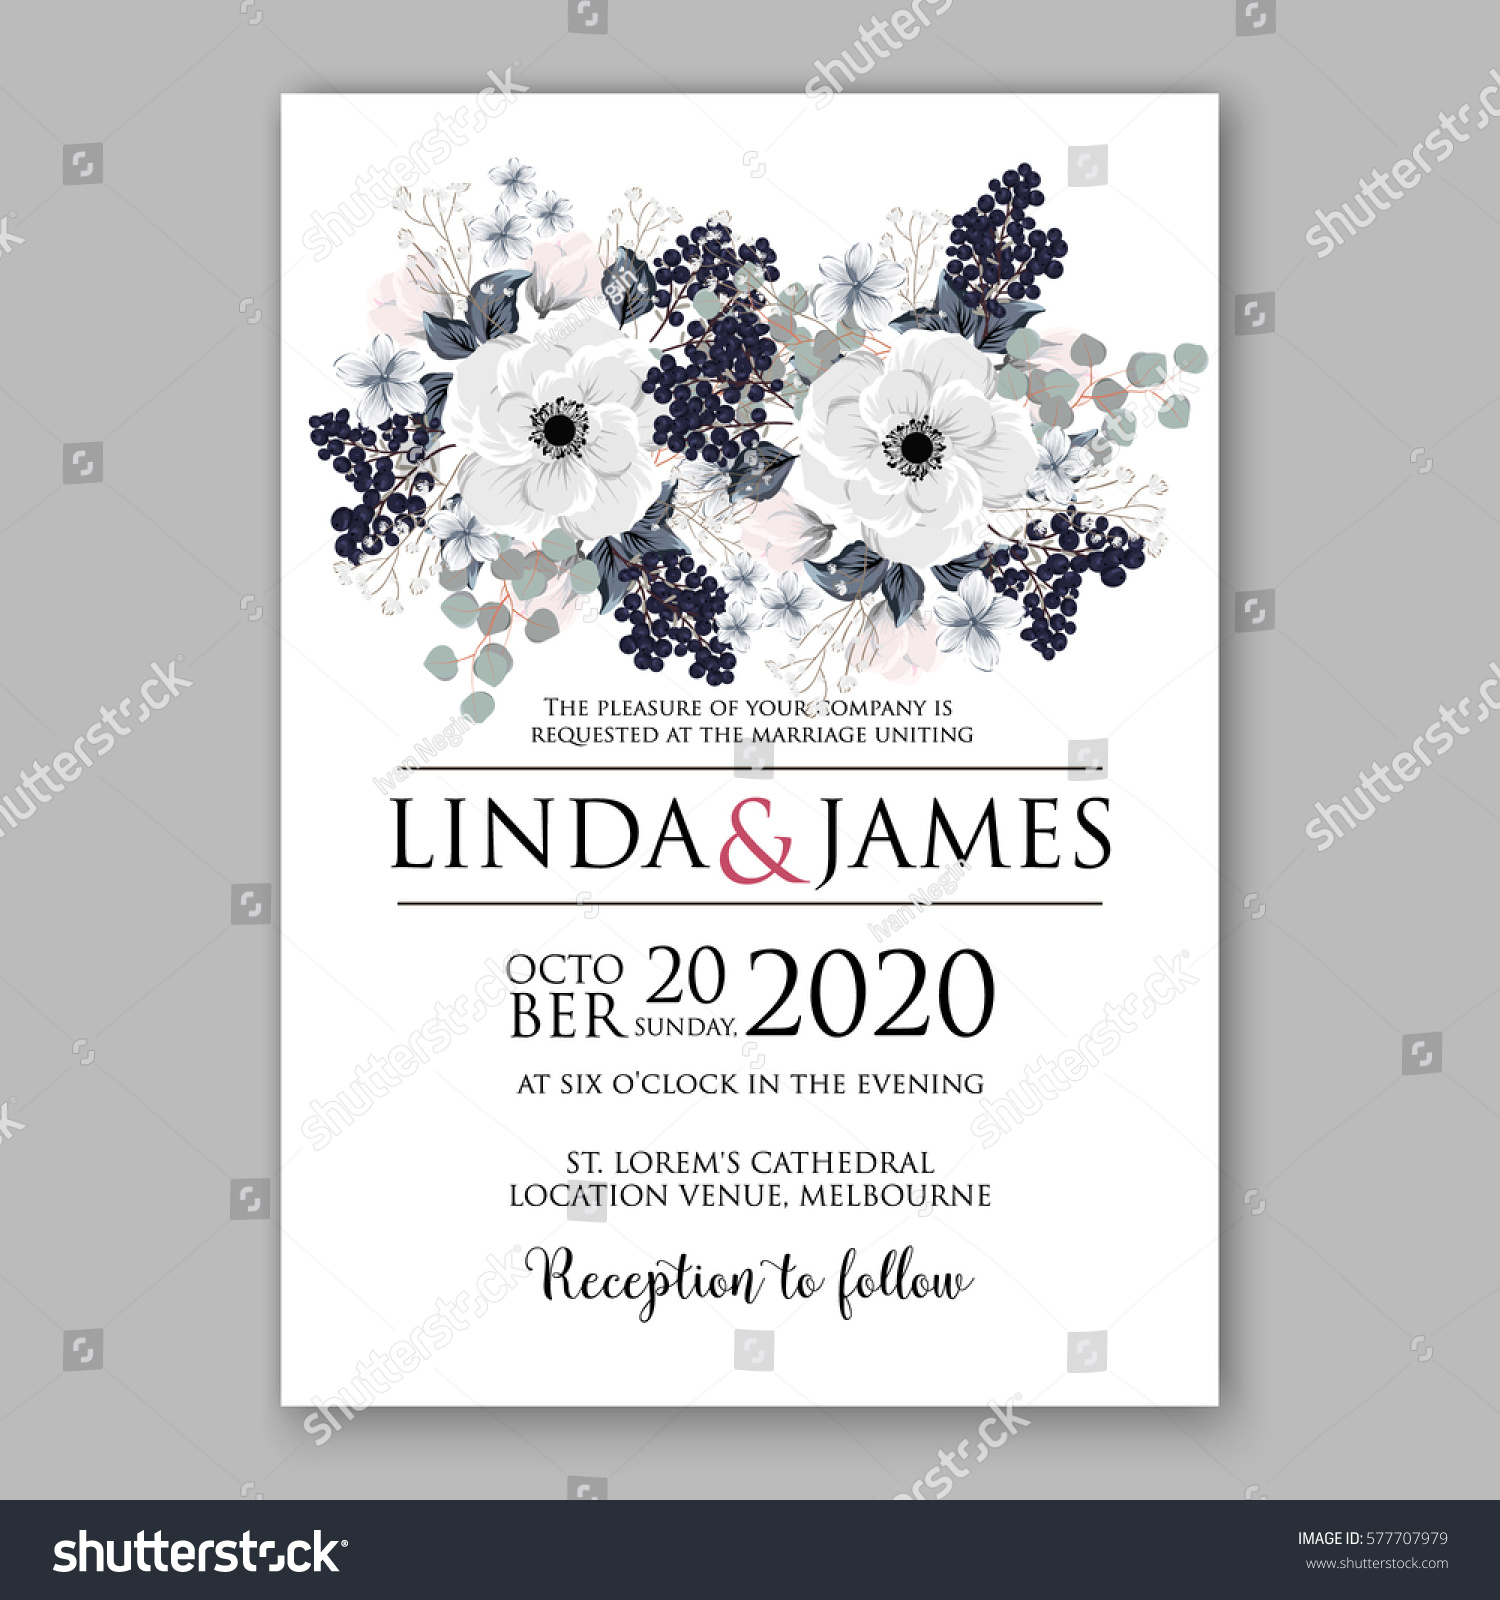 Anemone Wedding Invitation Card Template Floral Stock Photo (Photo ...